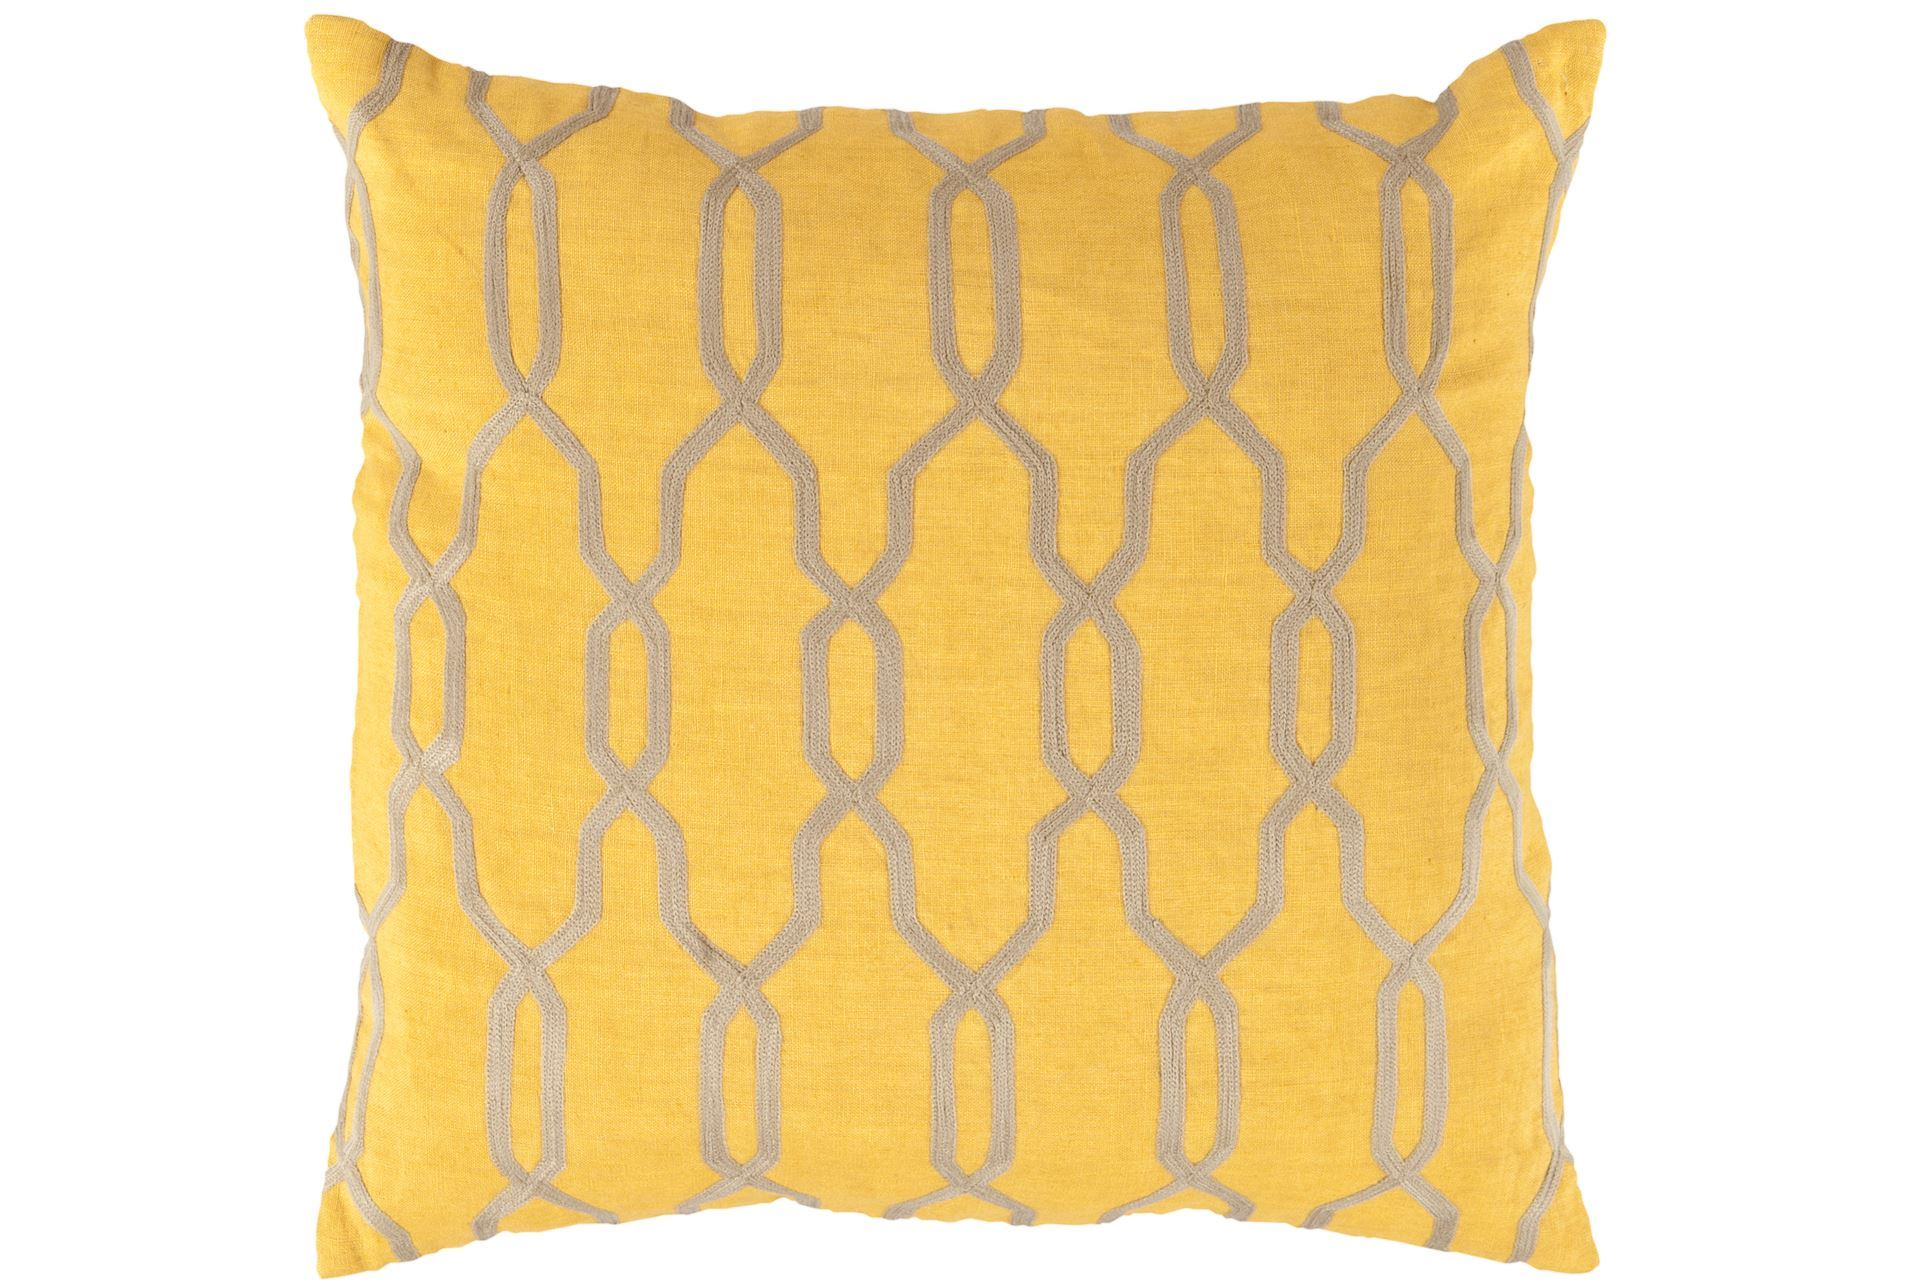 Decorative Pillows Living Spaces : Accent Pillow-Chains Geo Yellow 18X18 - Living Spaces